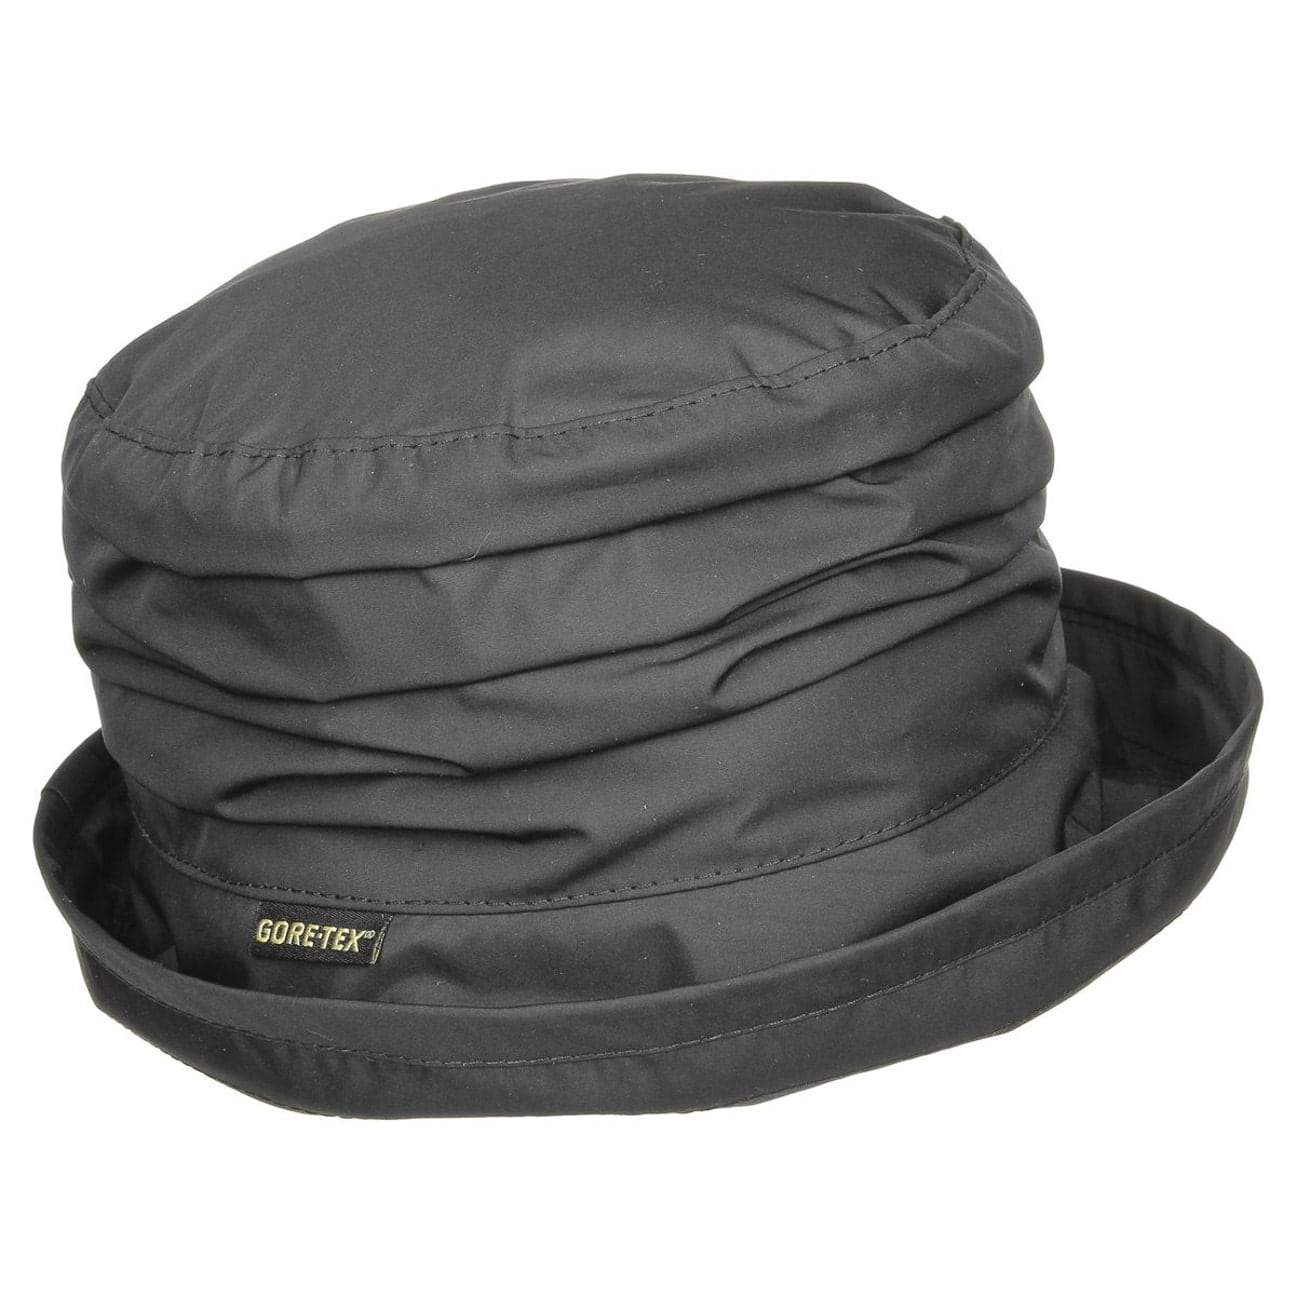 cc573a52884 Gore-Tex Rain Hat with Fleece by Seeberger - black 1